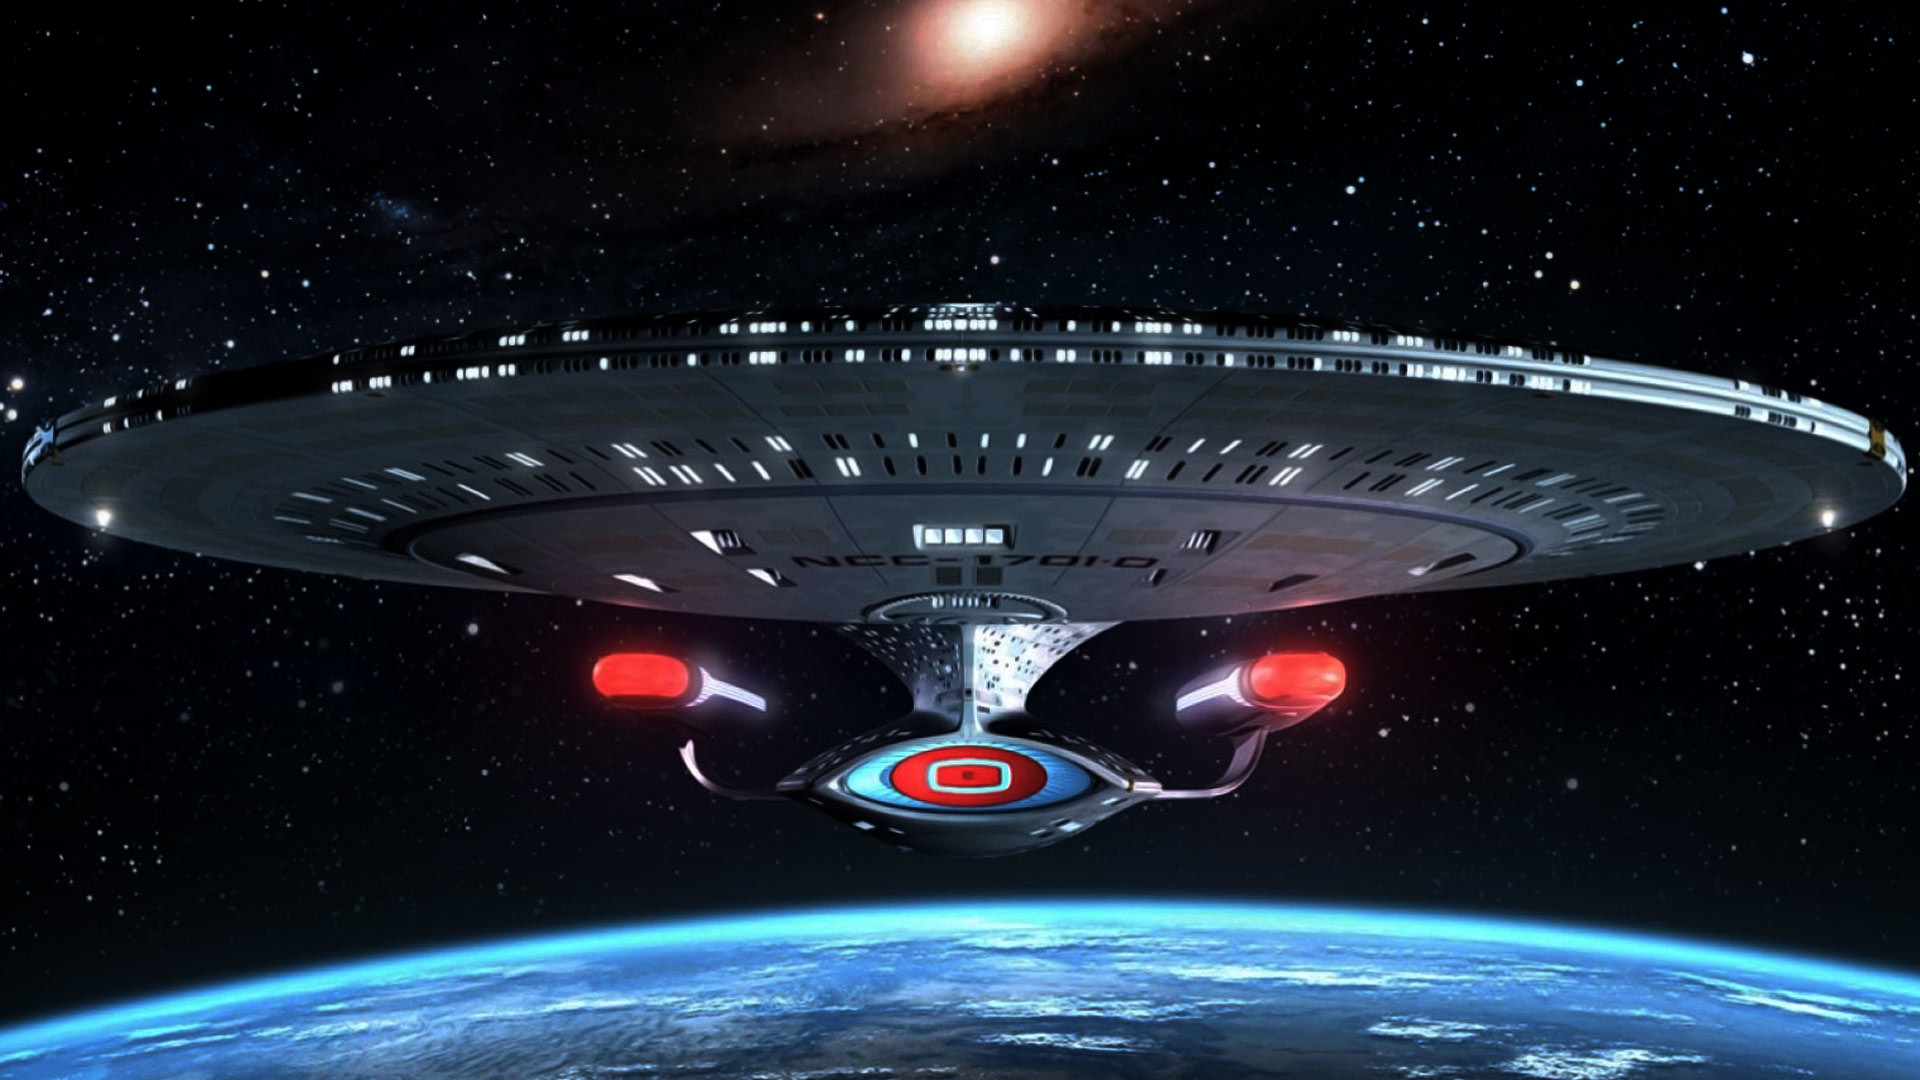 Explore Sci Fi Wallpaper, Wallpaper Backgrounds, and more!